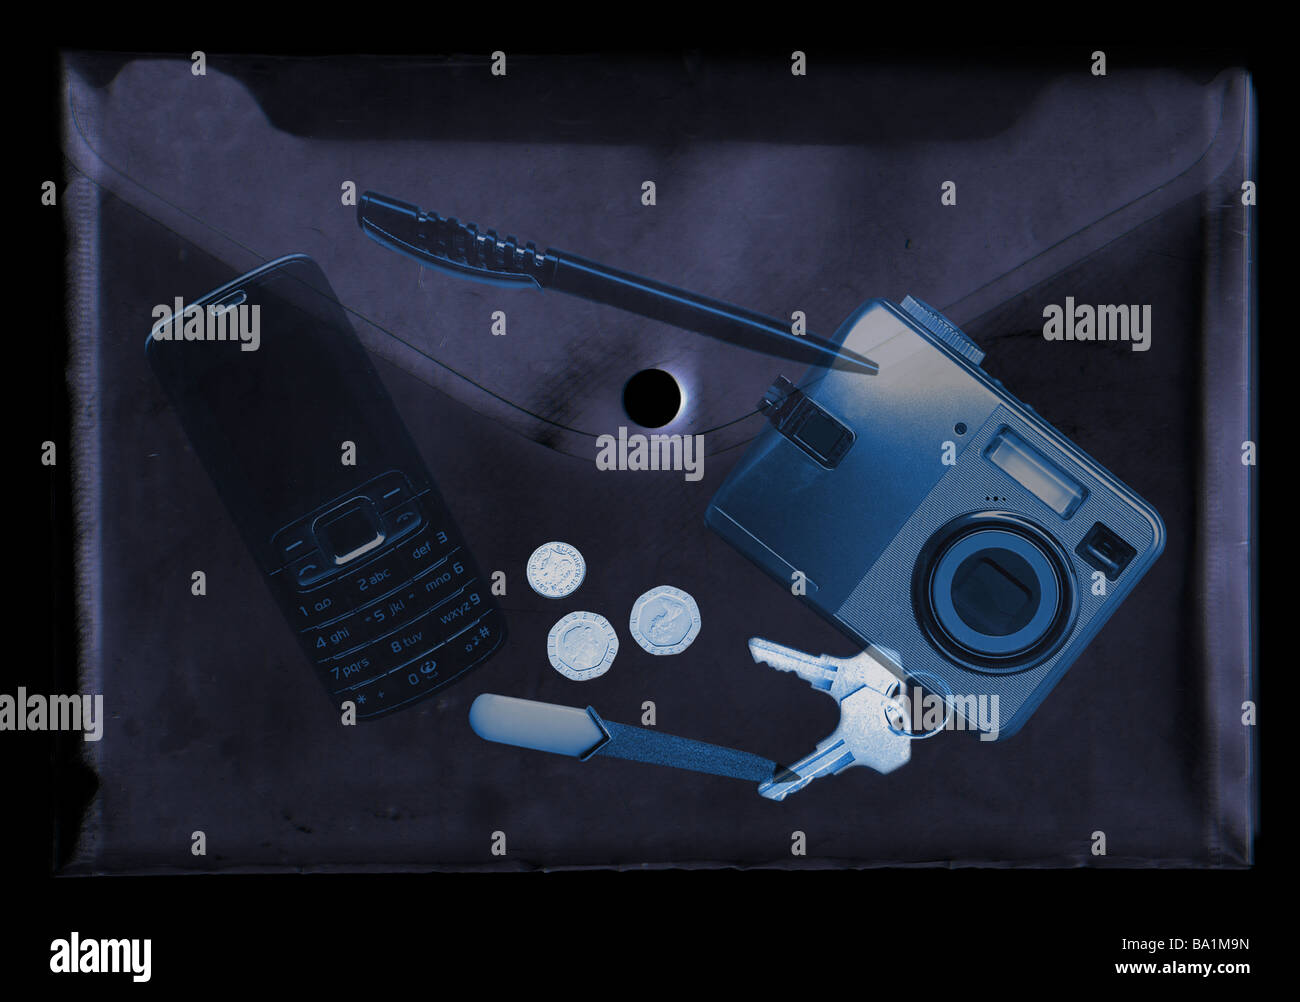 A montage of items in a bag as they would appear in an xray machine - Stock Image